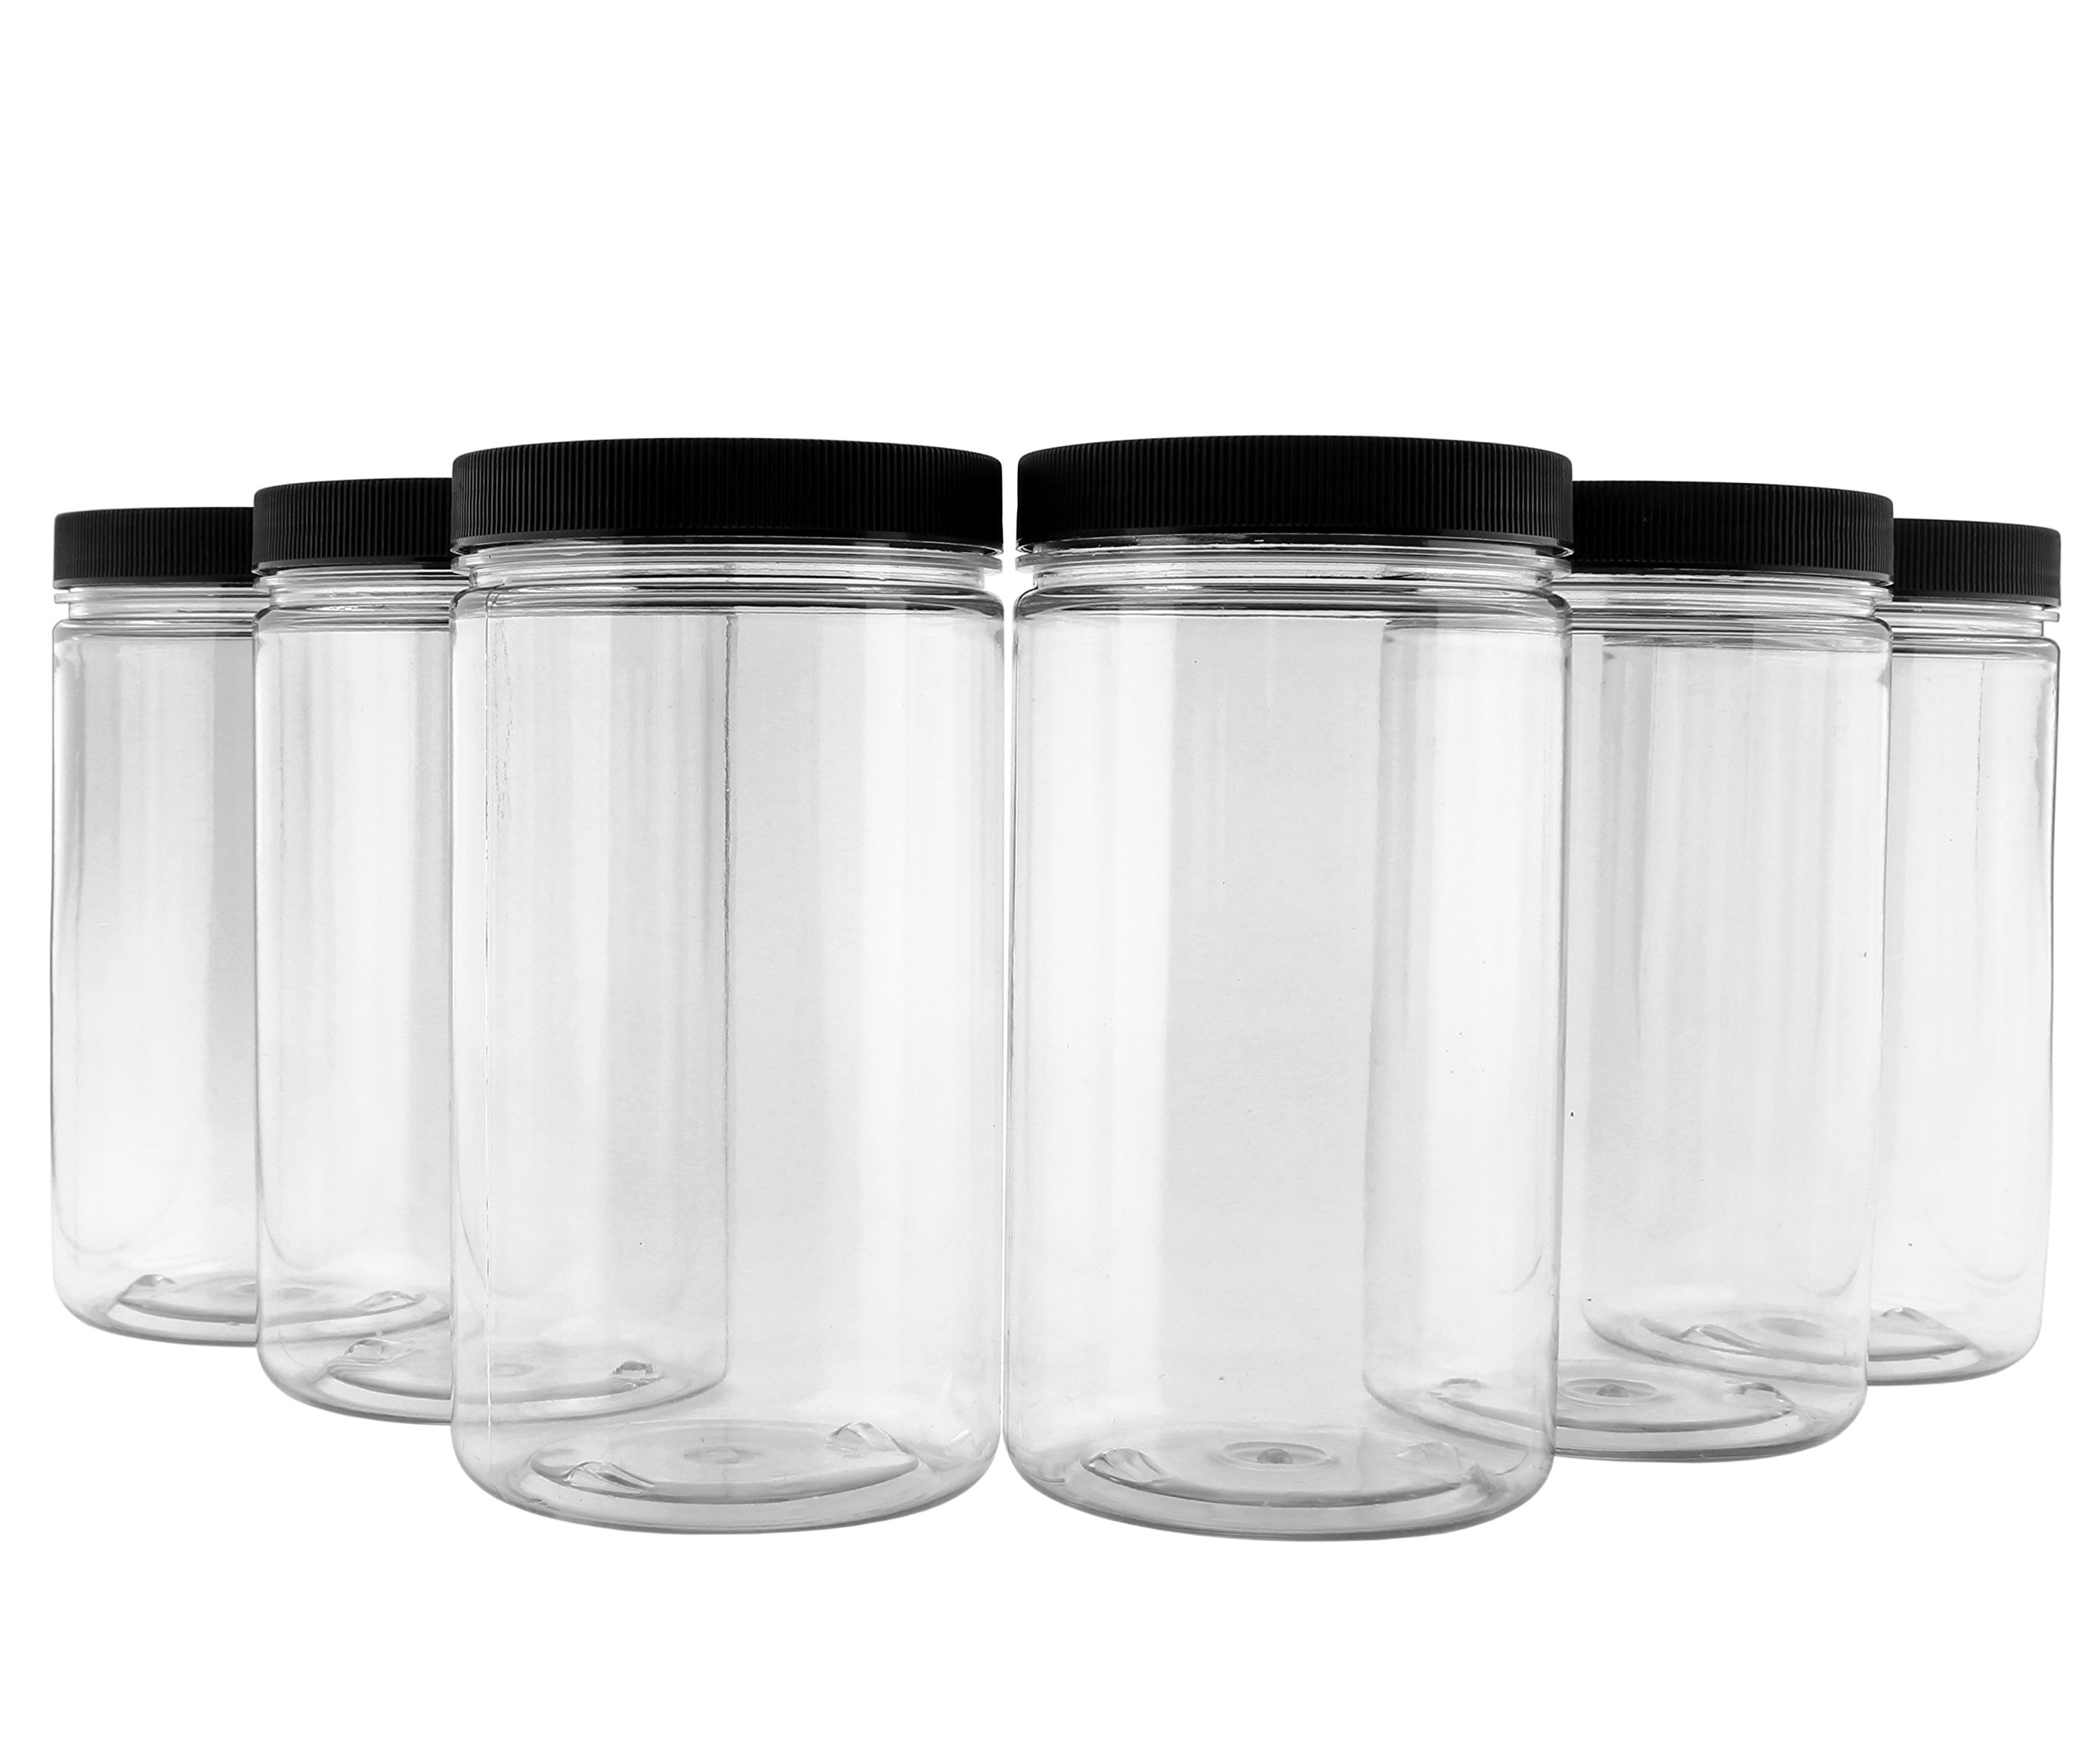 32oz Clear Plastic Jars with Black Ribbed Lids (6 pack): BPA Free PET Quart Size Canisters for Kitchen & Household Storage of Dry Goods, Peanut Butter, and More by Cornucopia Brands